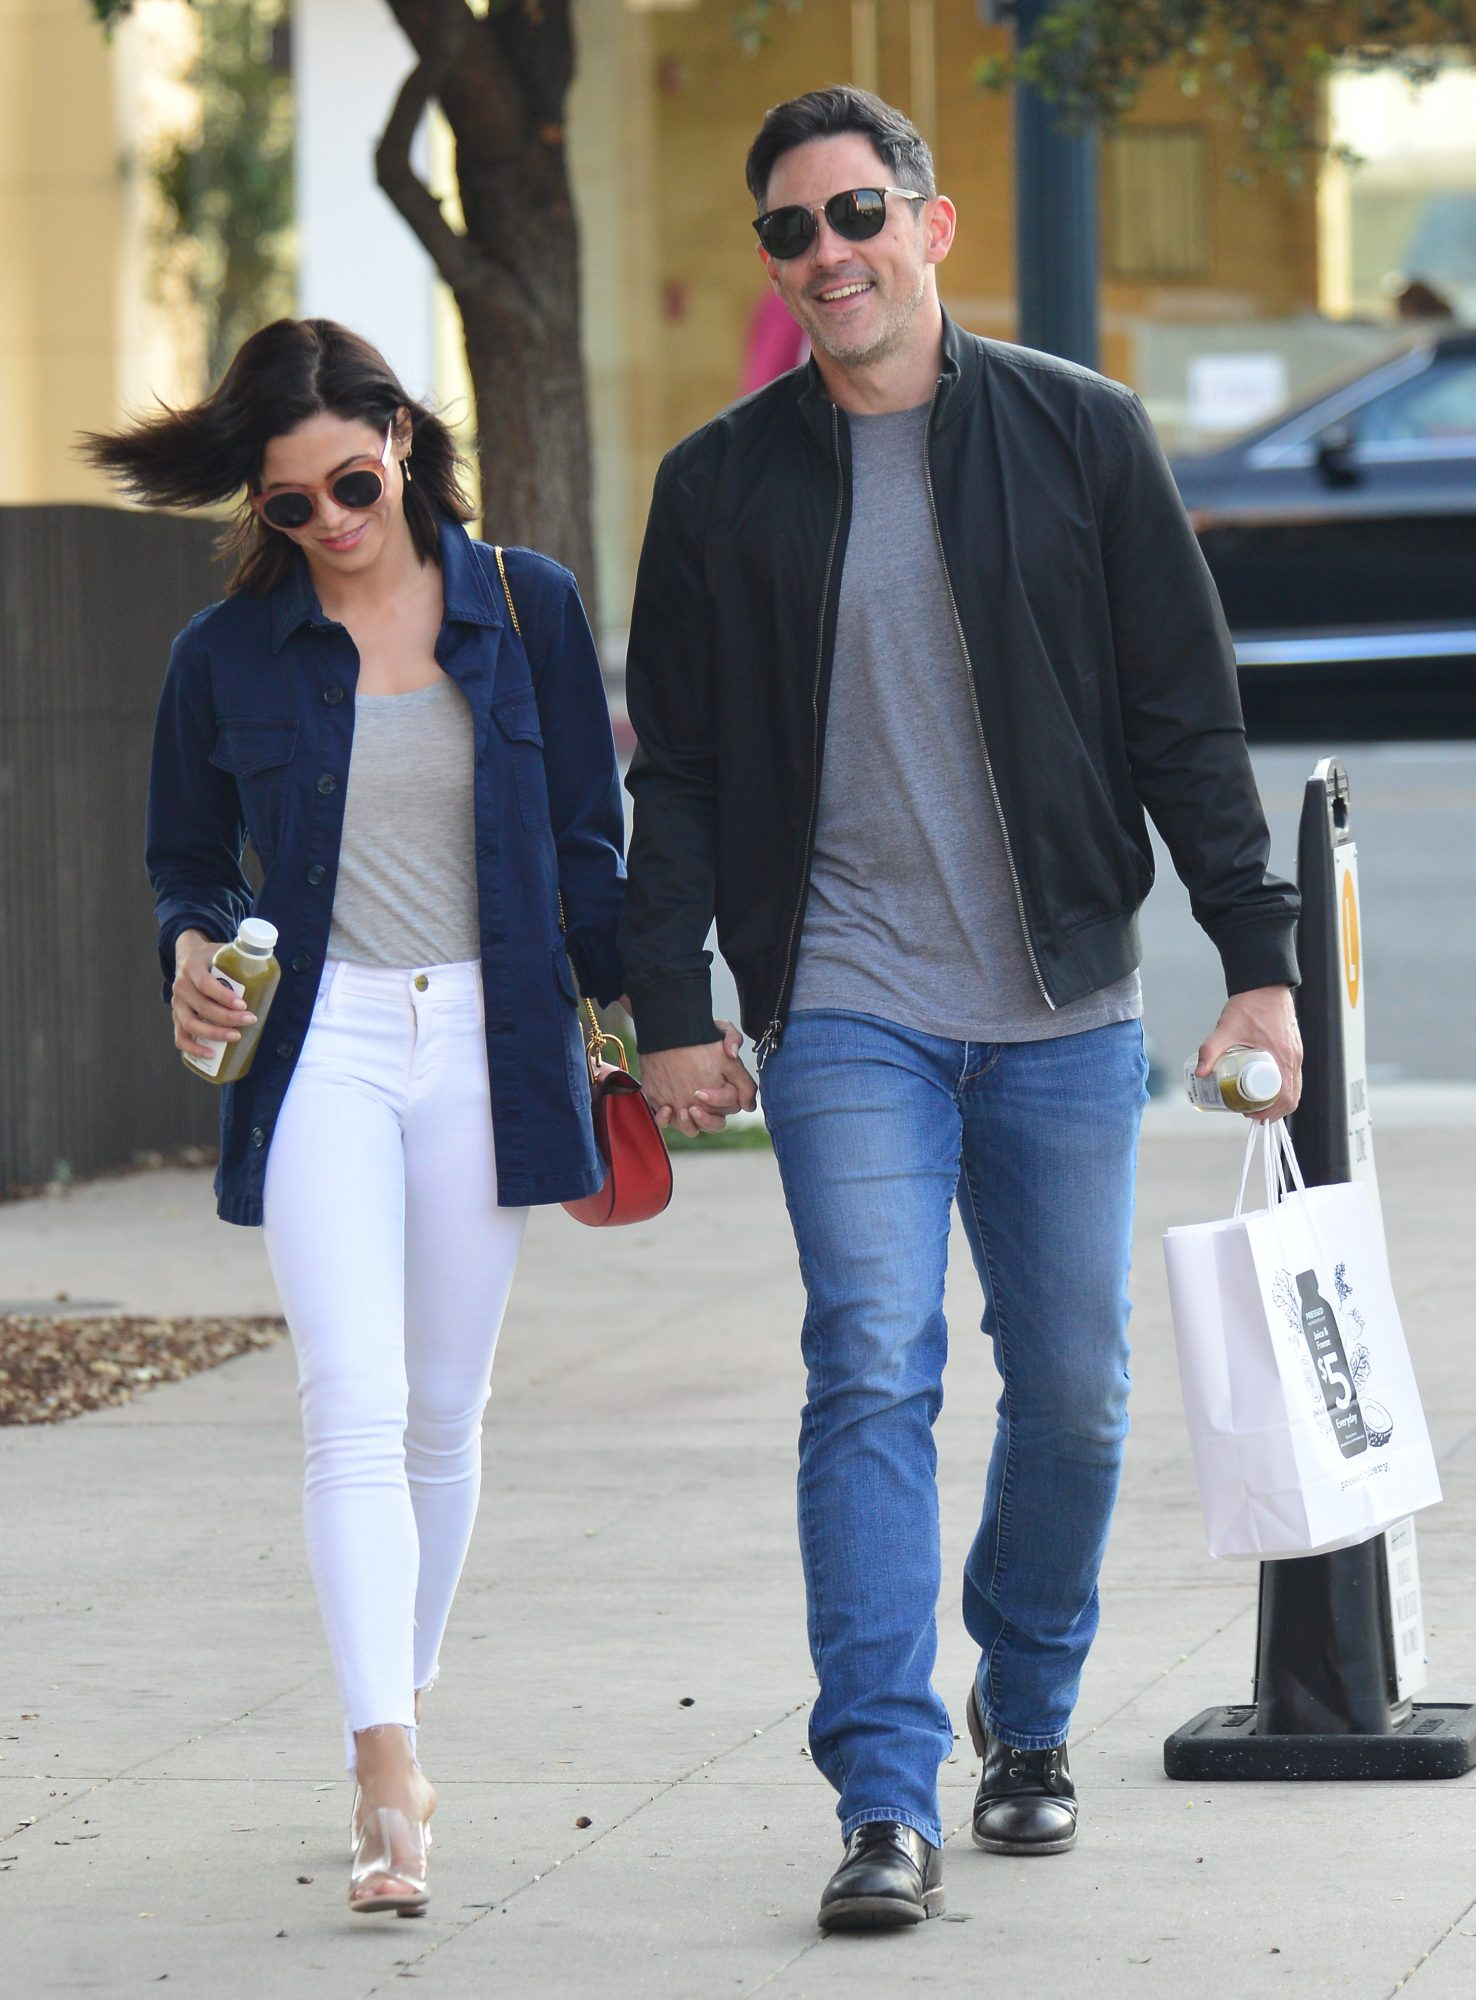 Jenna Dewan is all smiles as she is spotted with new boyfriend Steve Kazee as they walk hand in hand in Beverly Hills, Ca